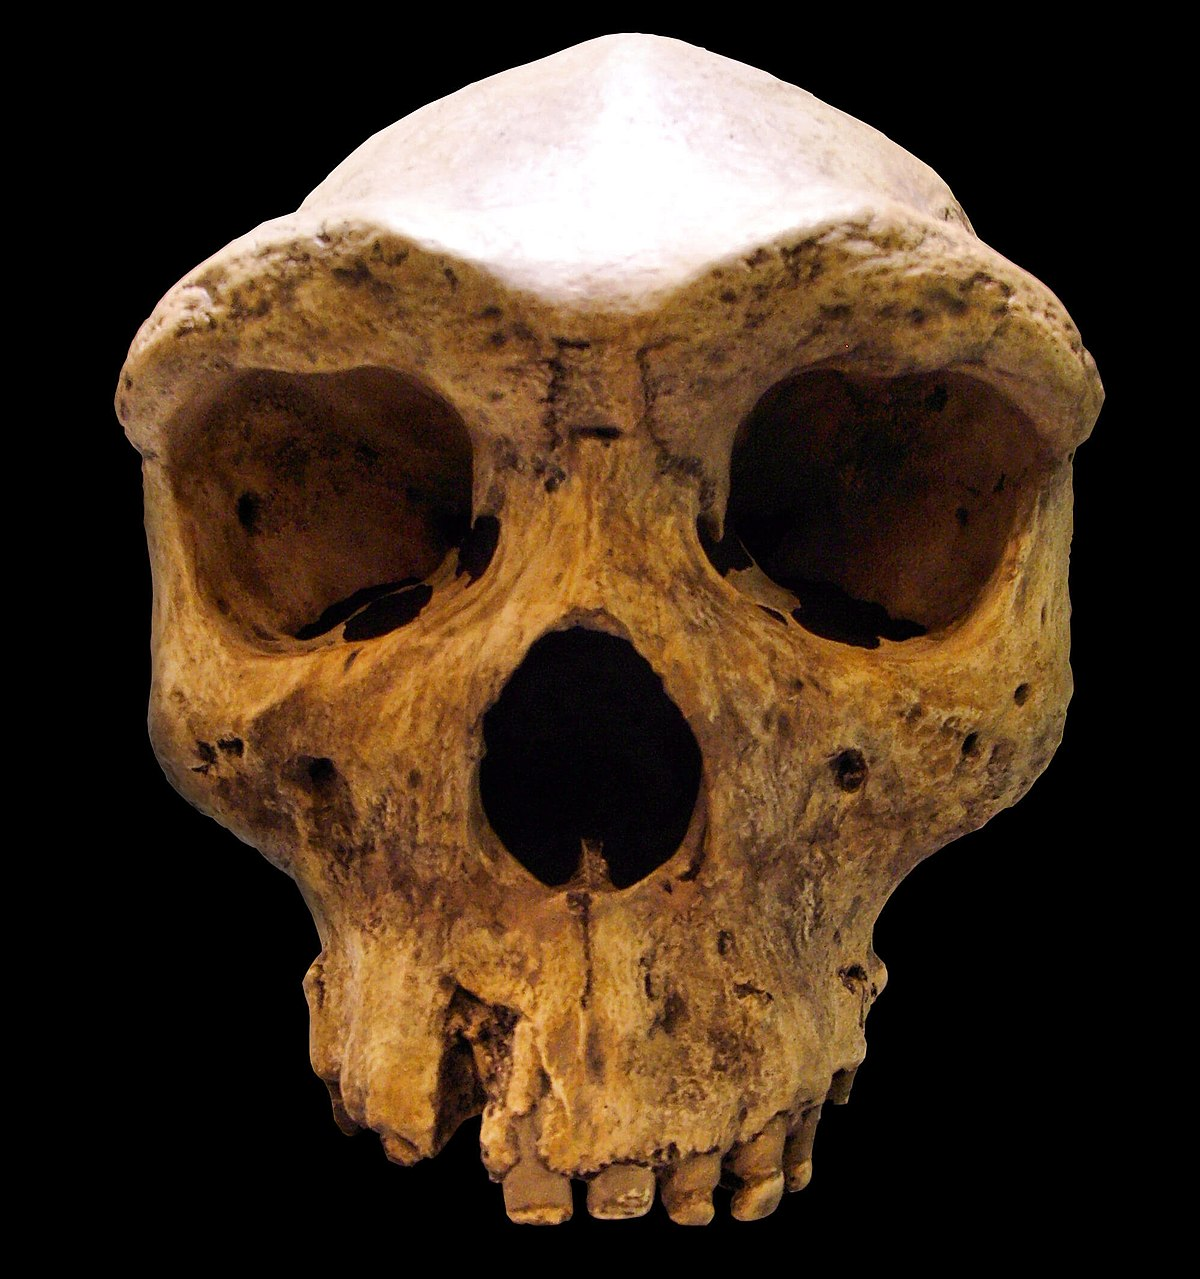 Archaic humans - Wikipedia